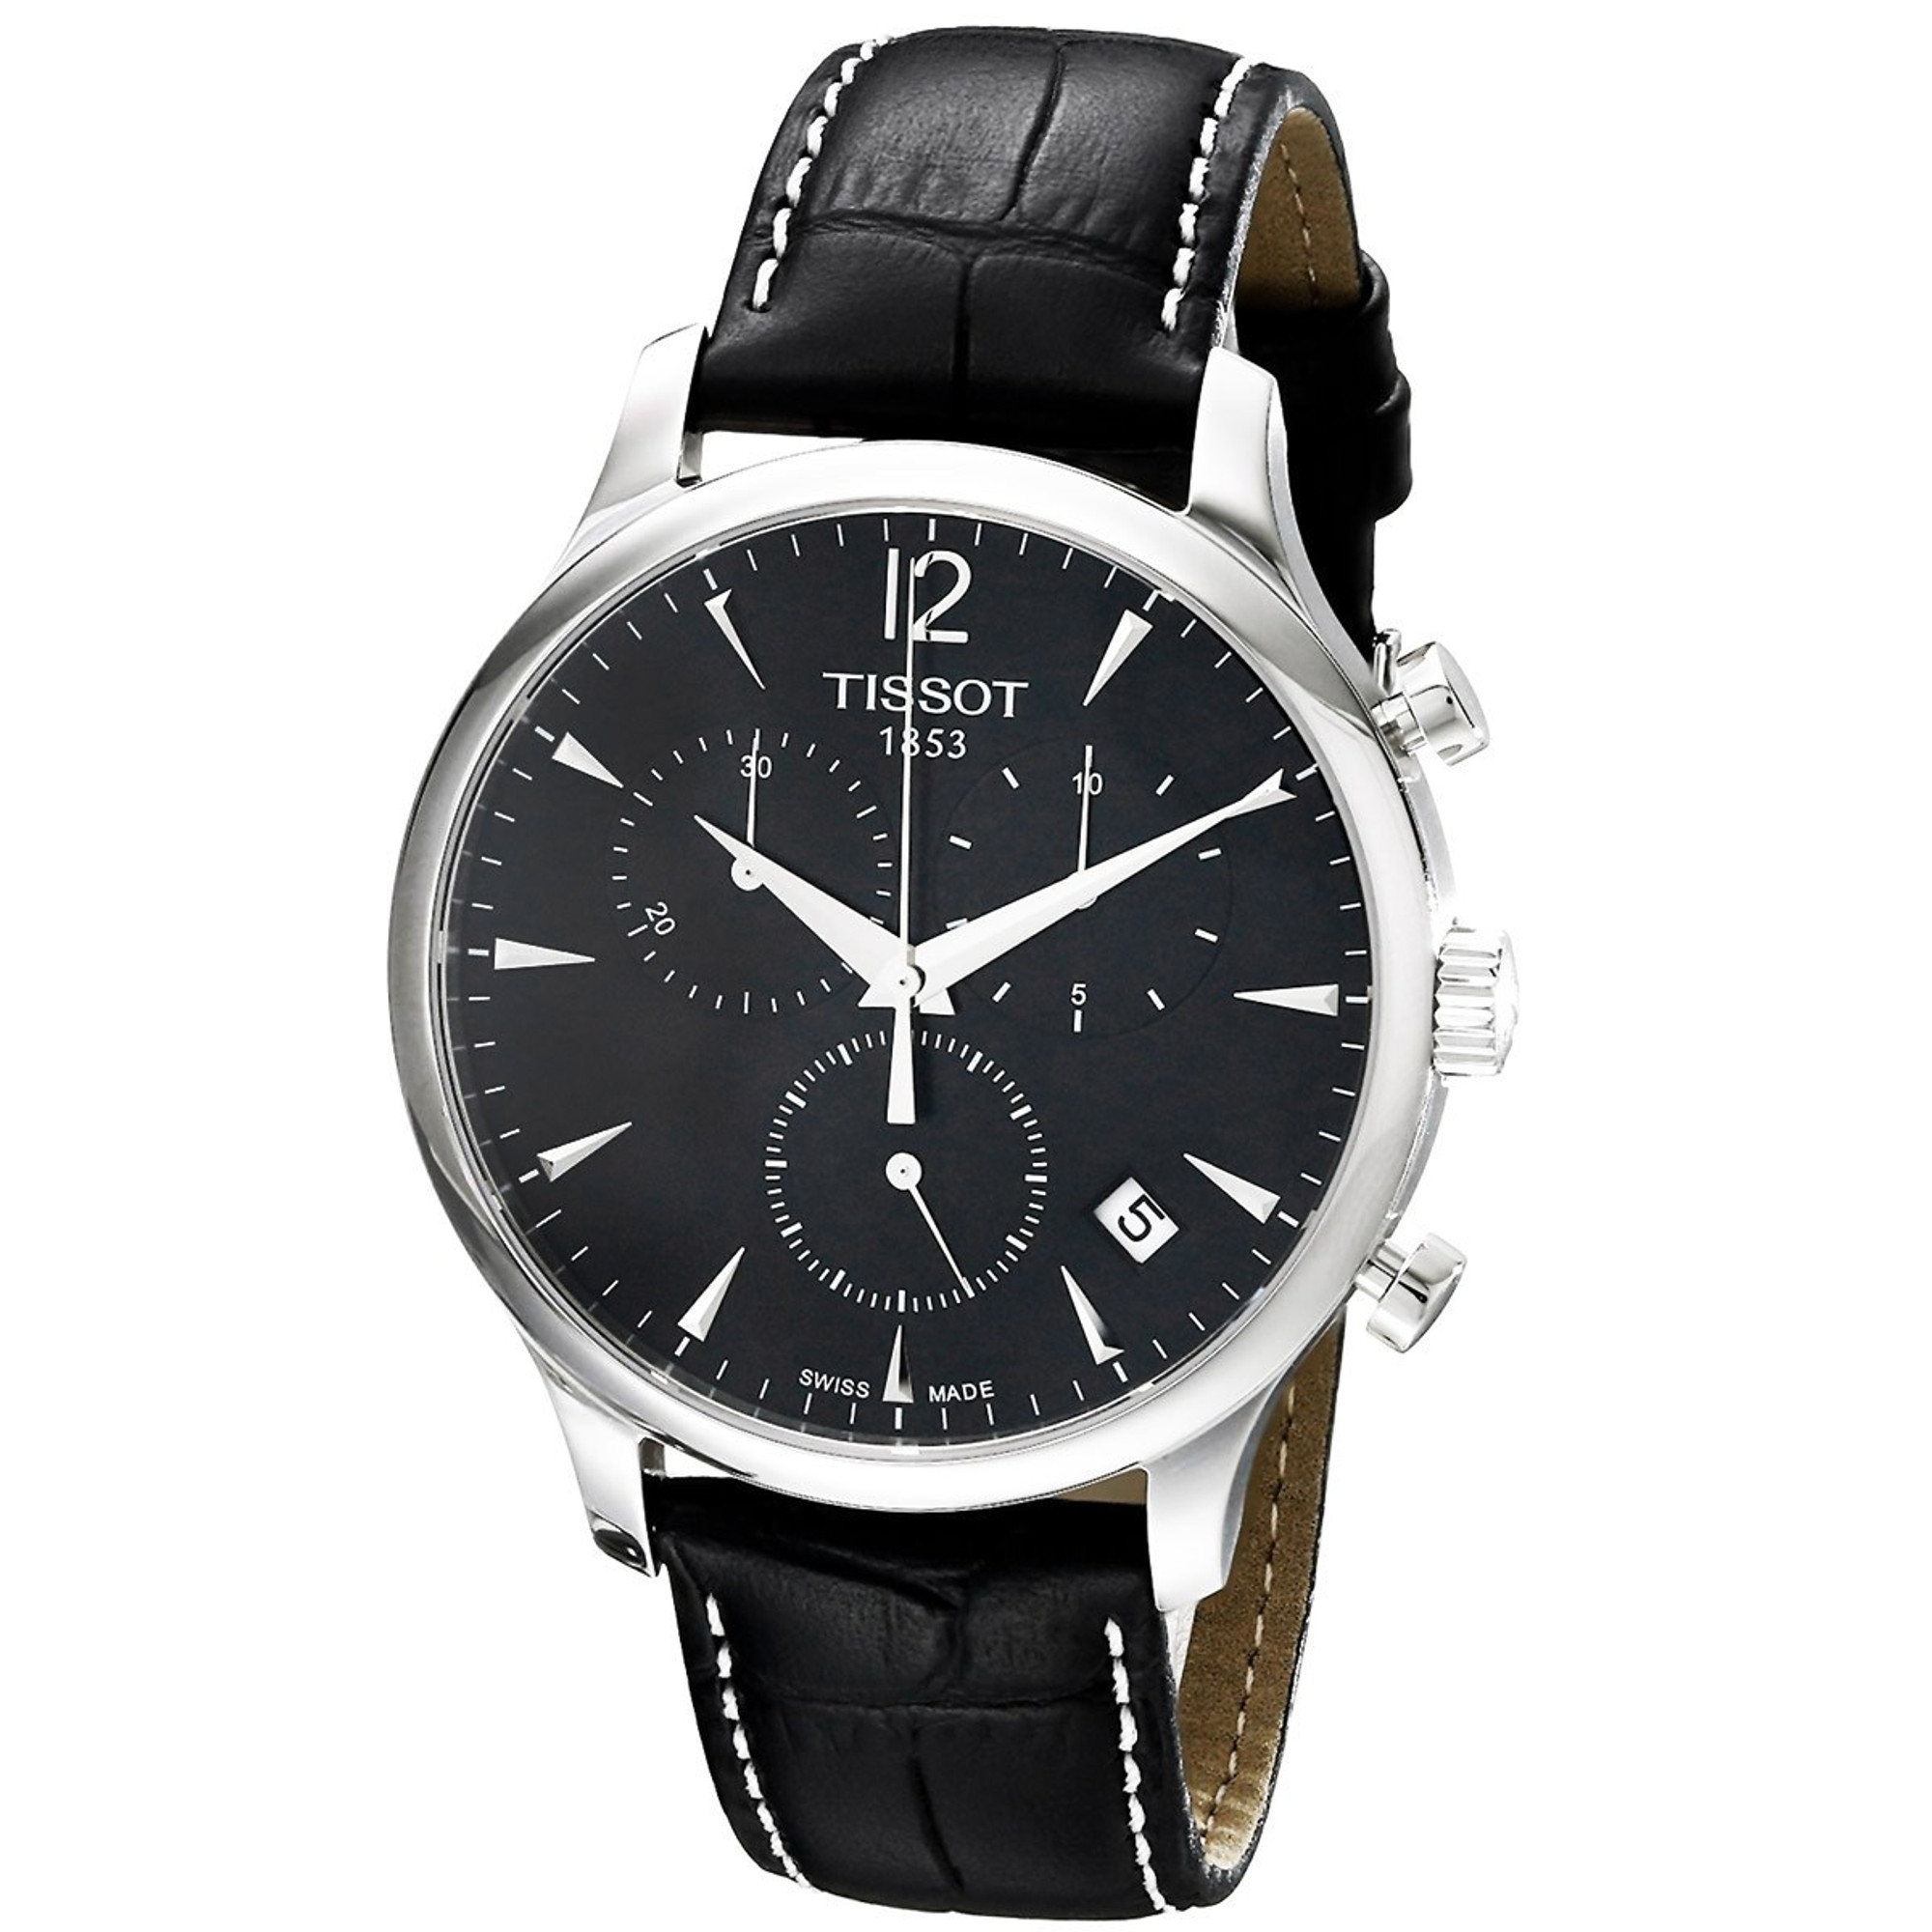 TISSOT Tradition Gent Chronograph T063.617.16.057.00